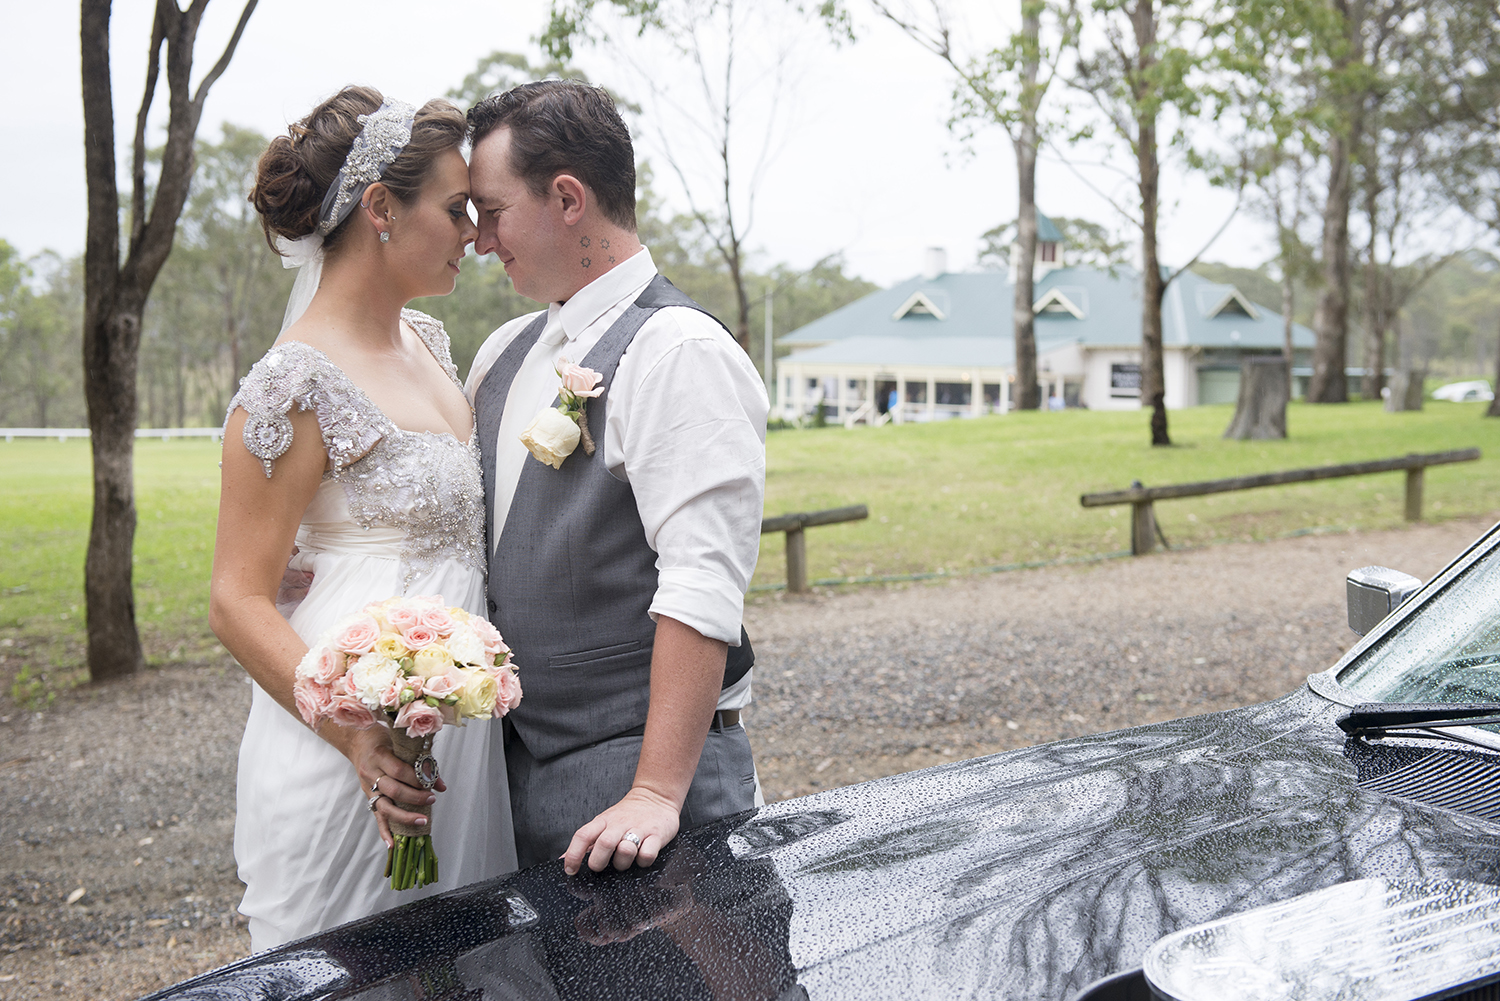 Our Wedding0456.jpg